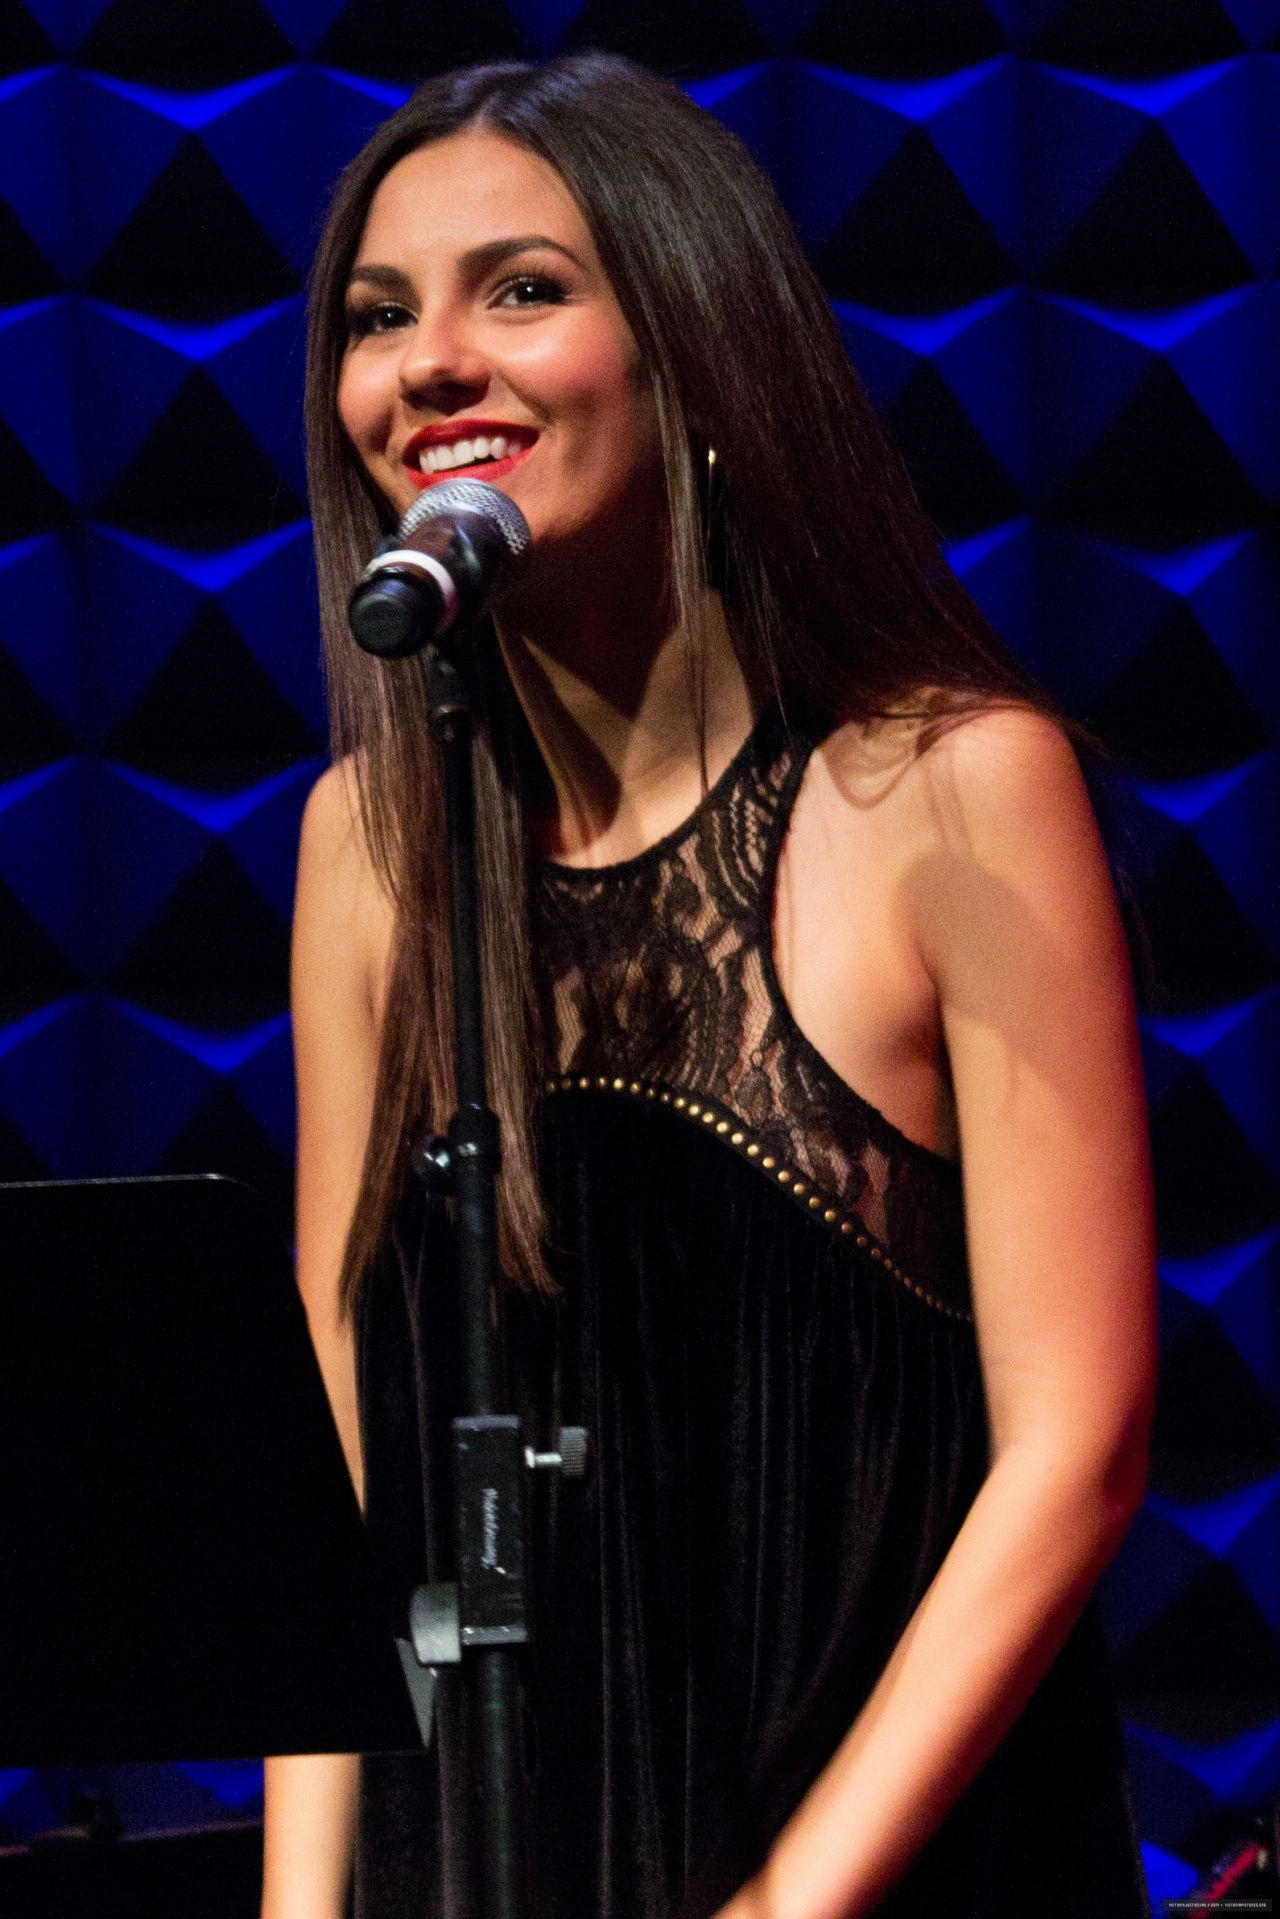 Victoria Justice - Performing at Joe